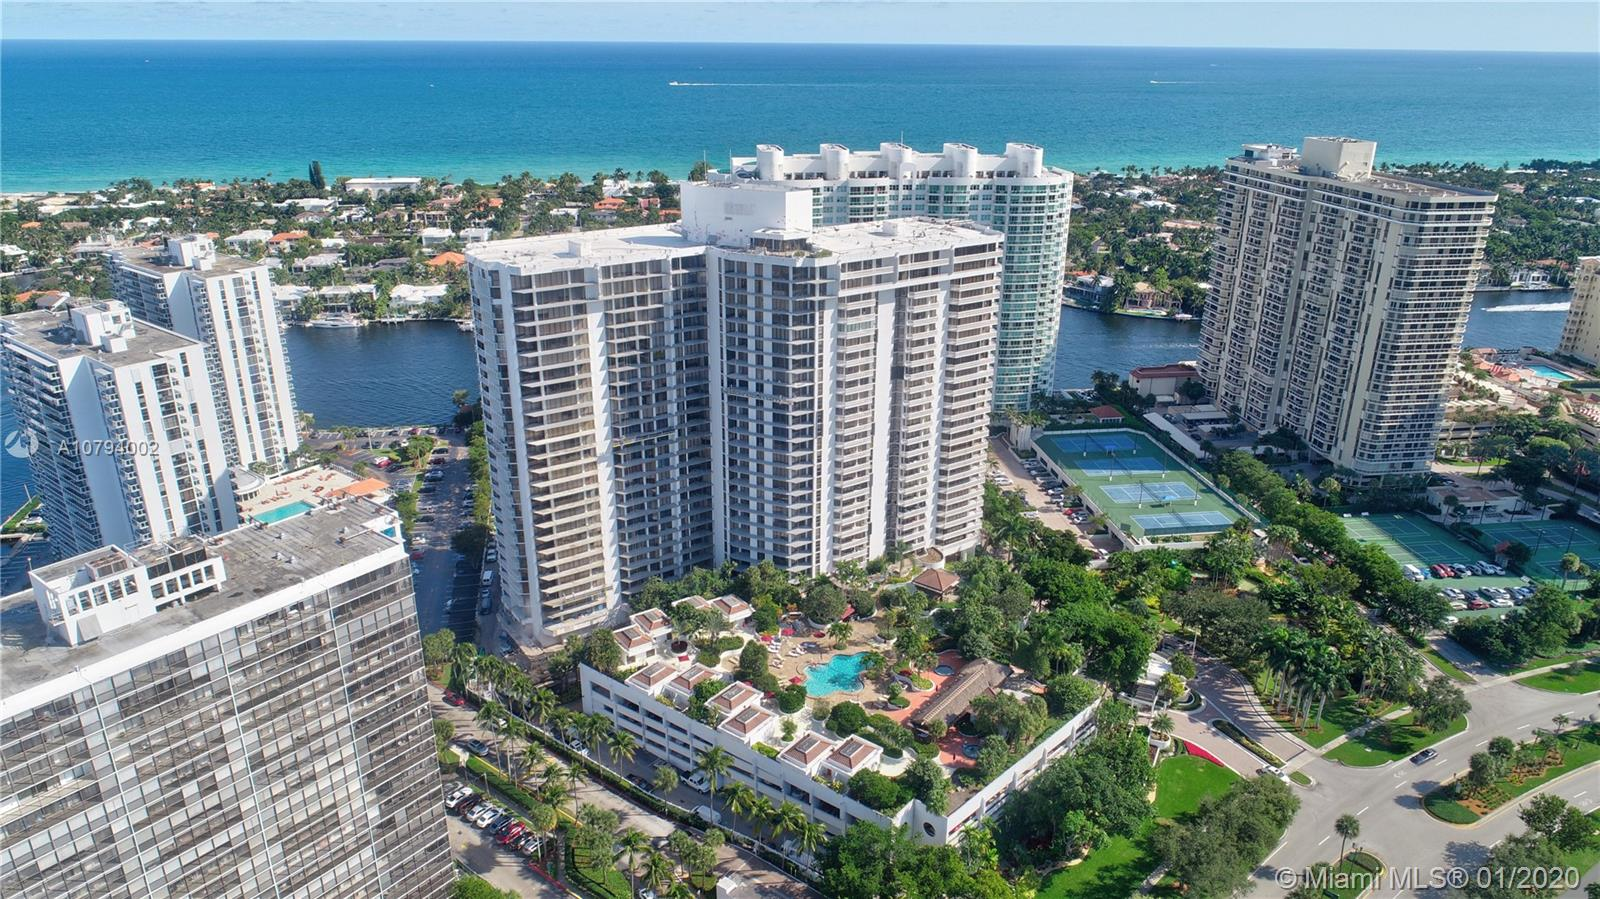 20281 E Country Club Dr #1104 For Sale A10794002, FL